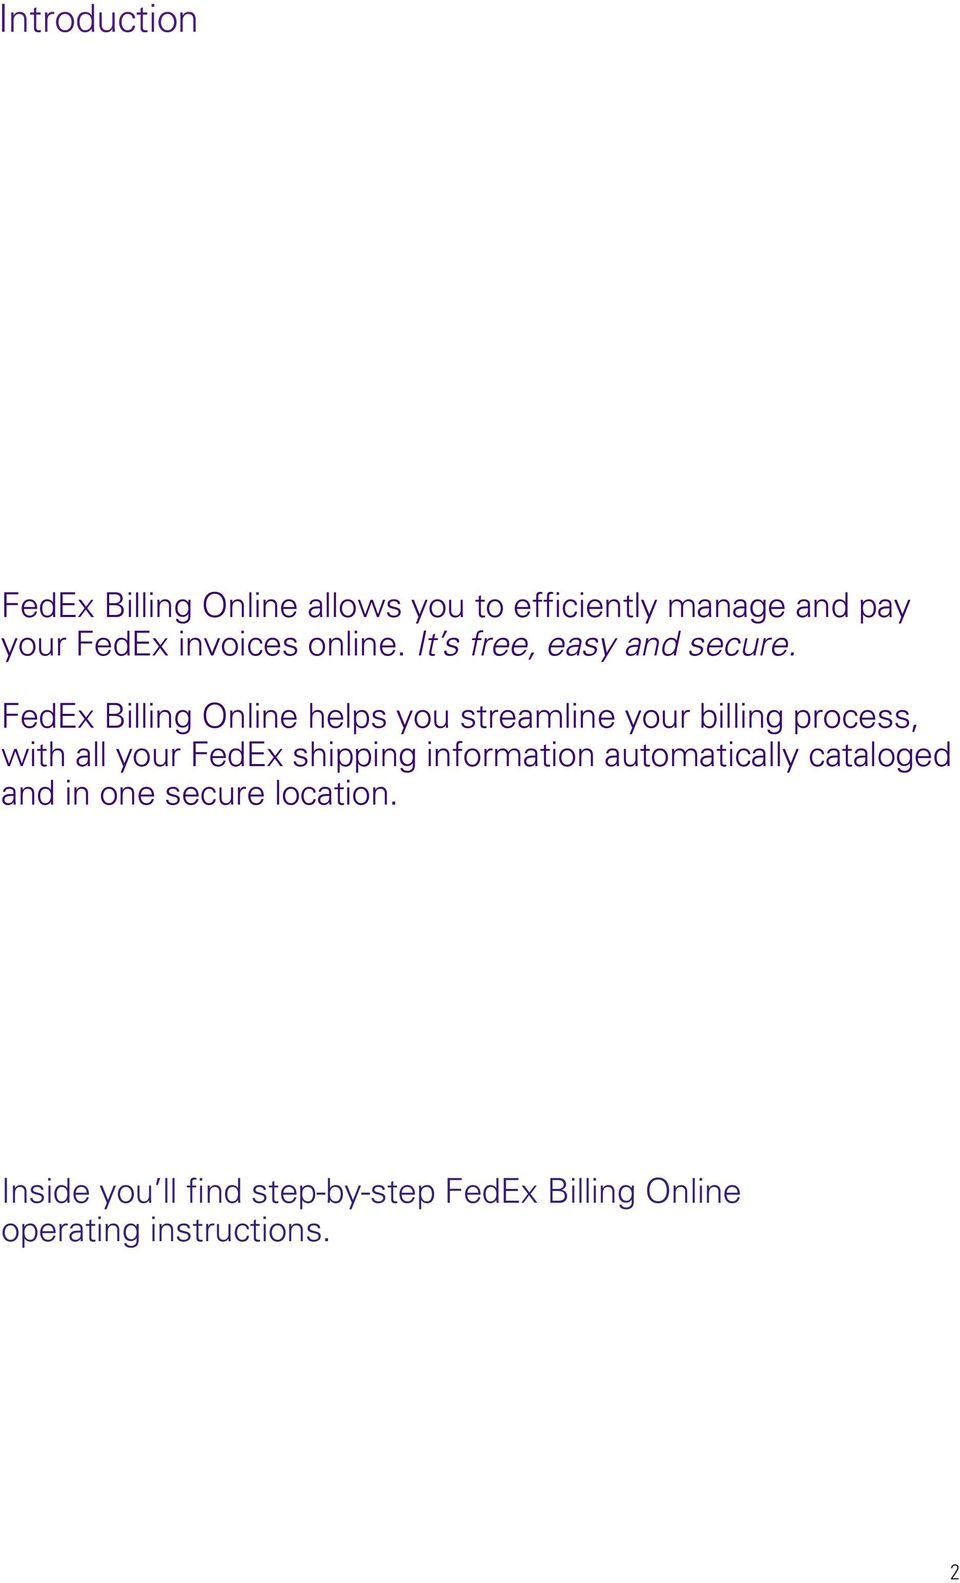 FedEx Billing Online helps you streamline your billing process, with all your FedEx